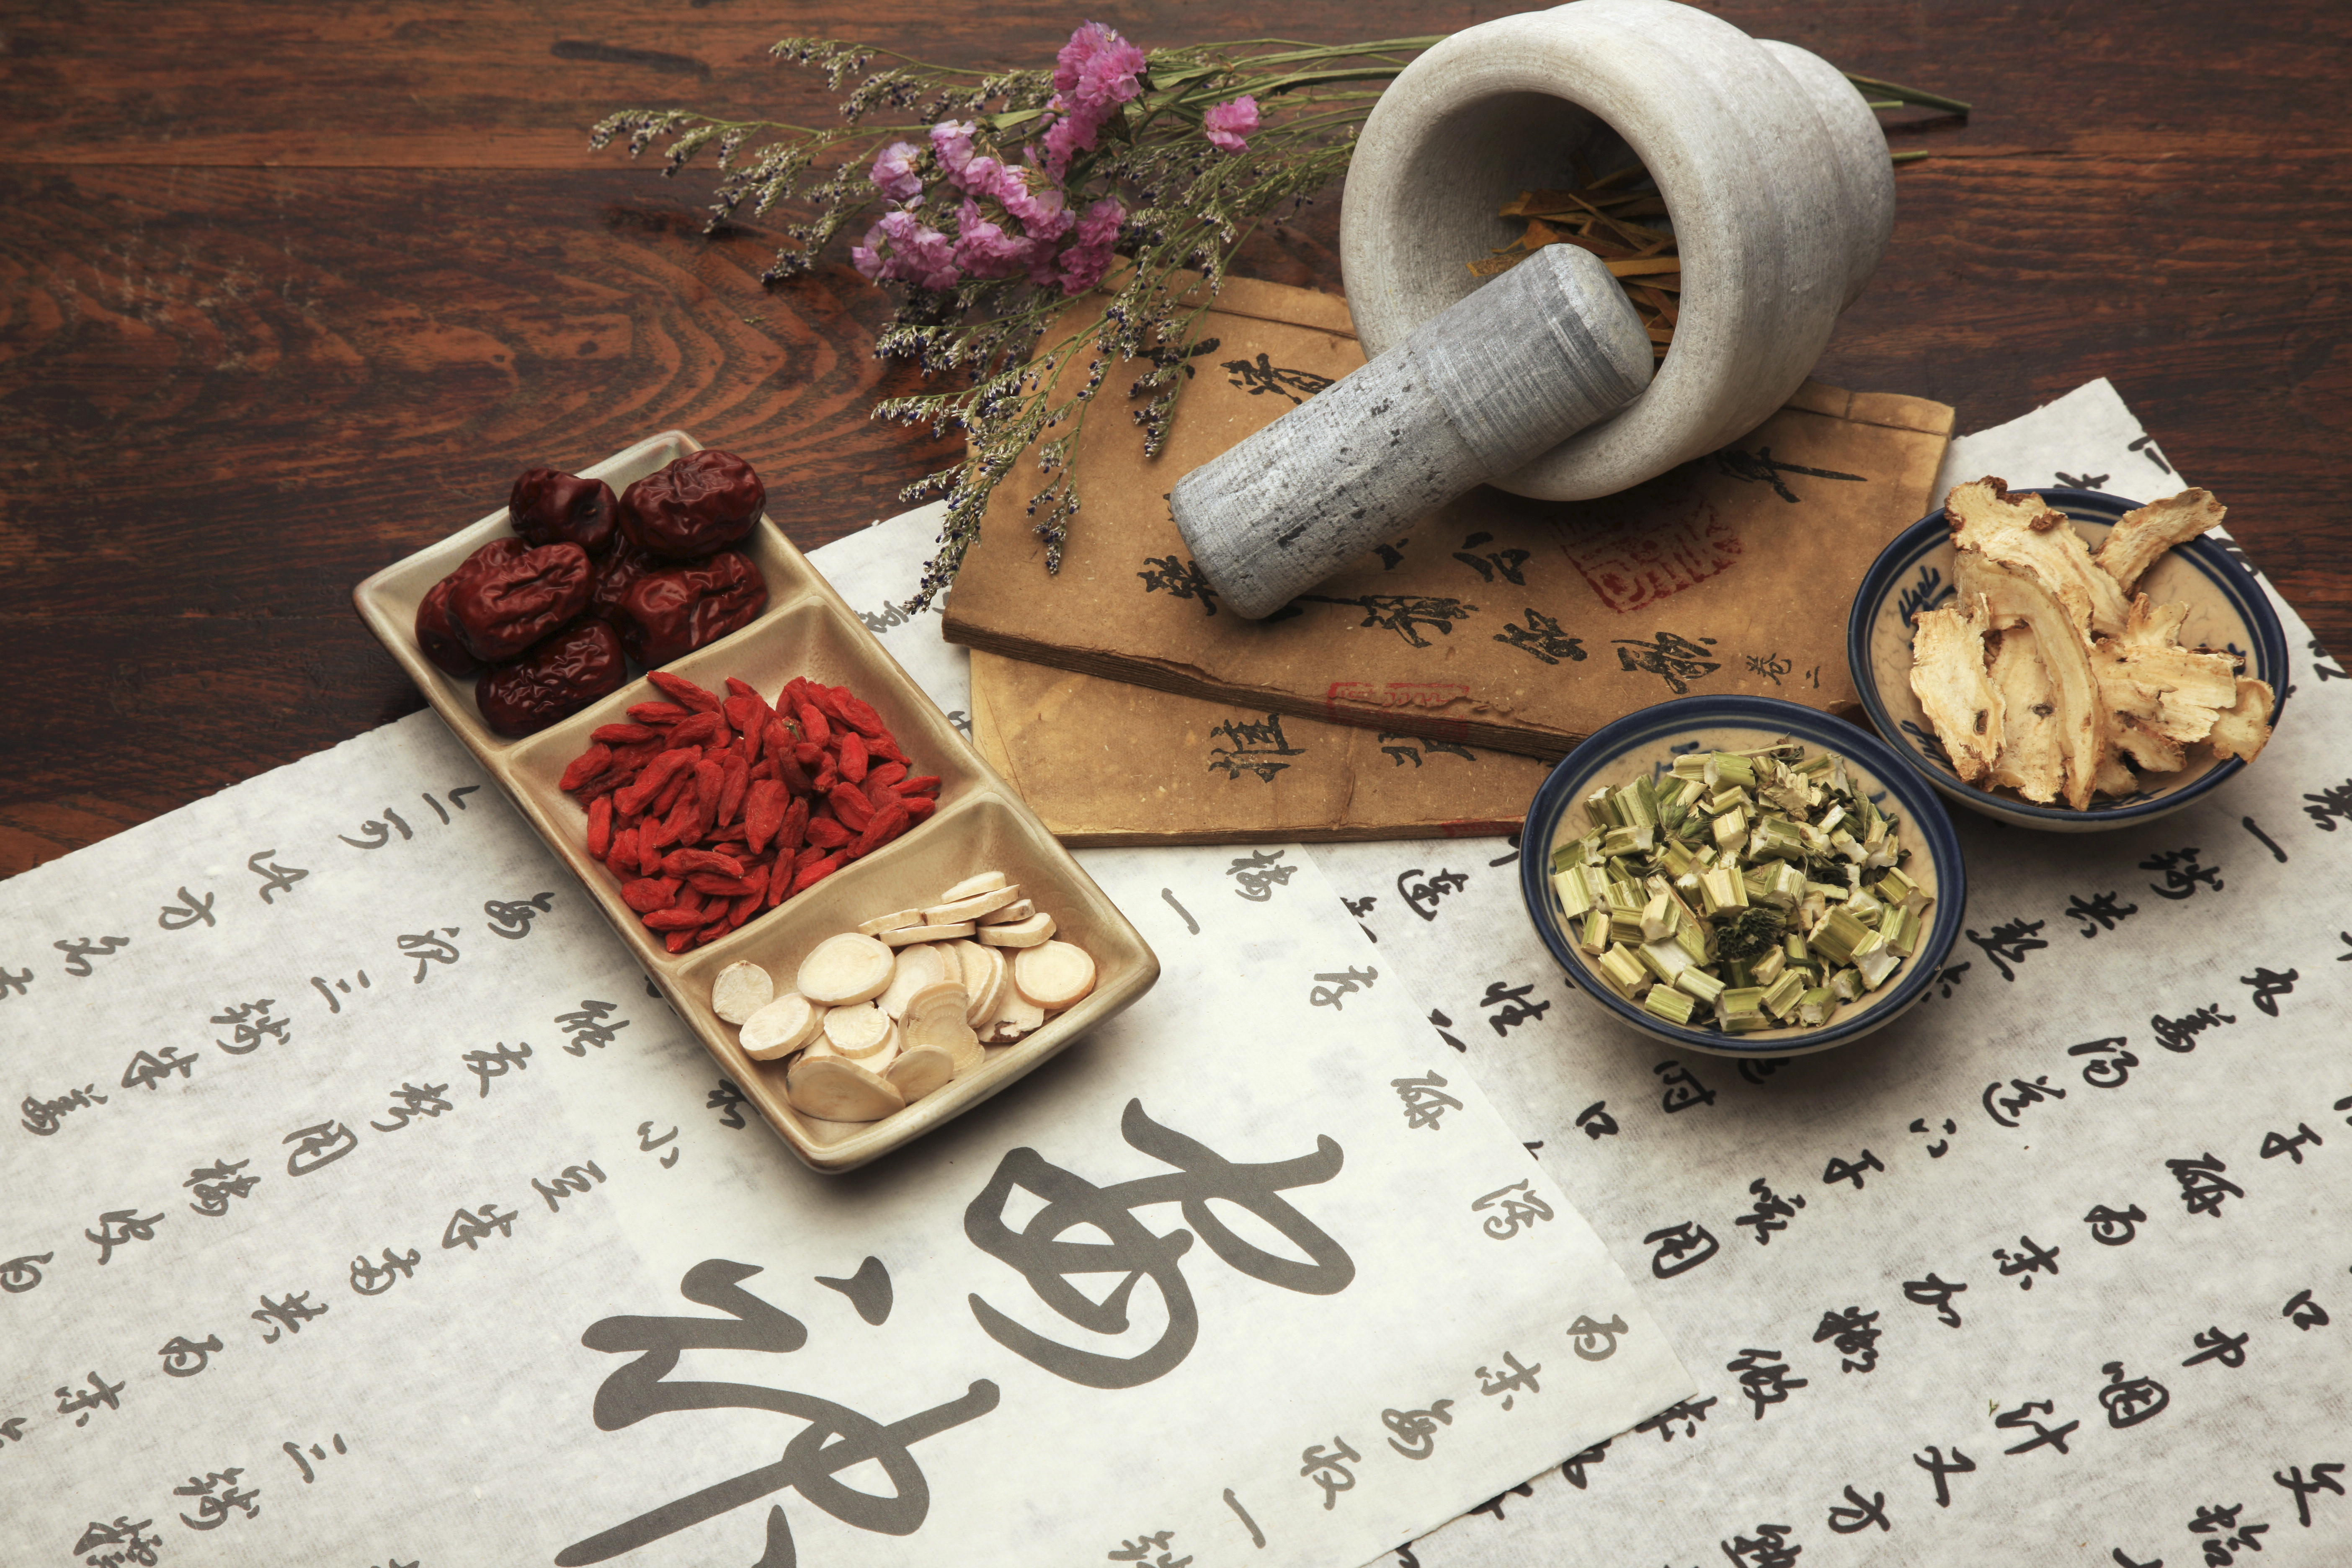 traditional Chinese medicines